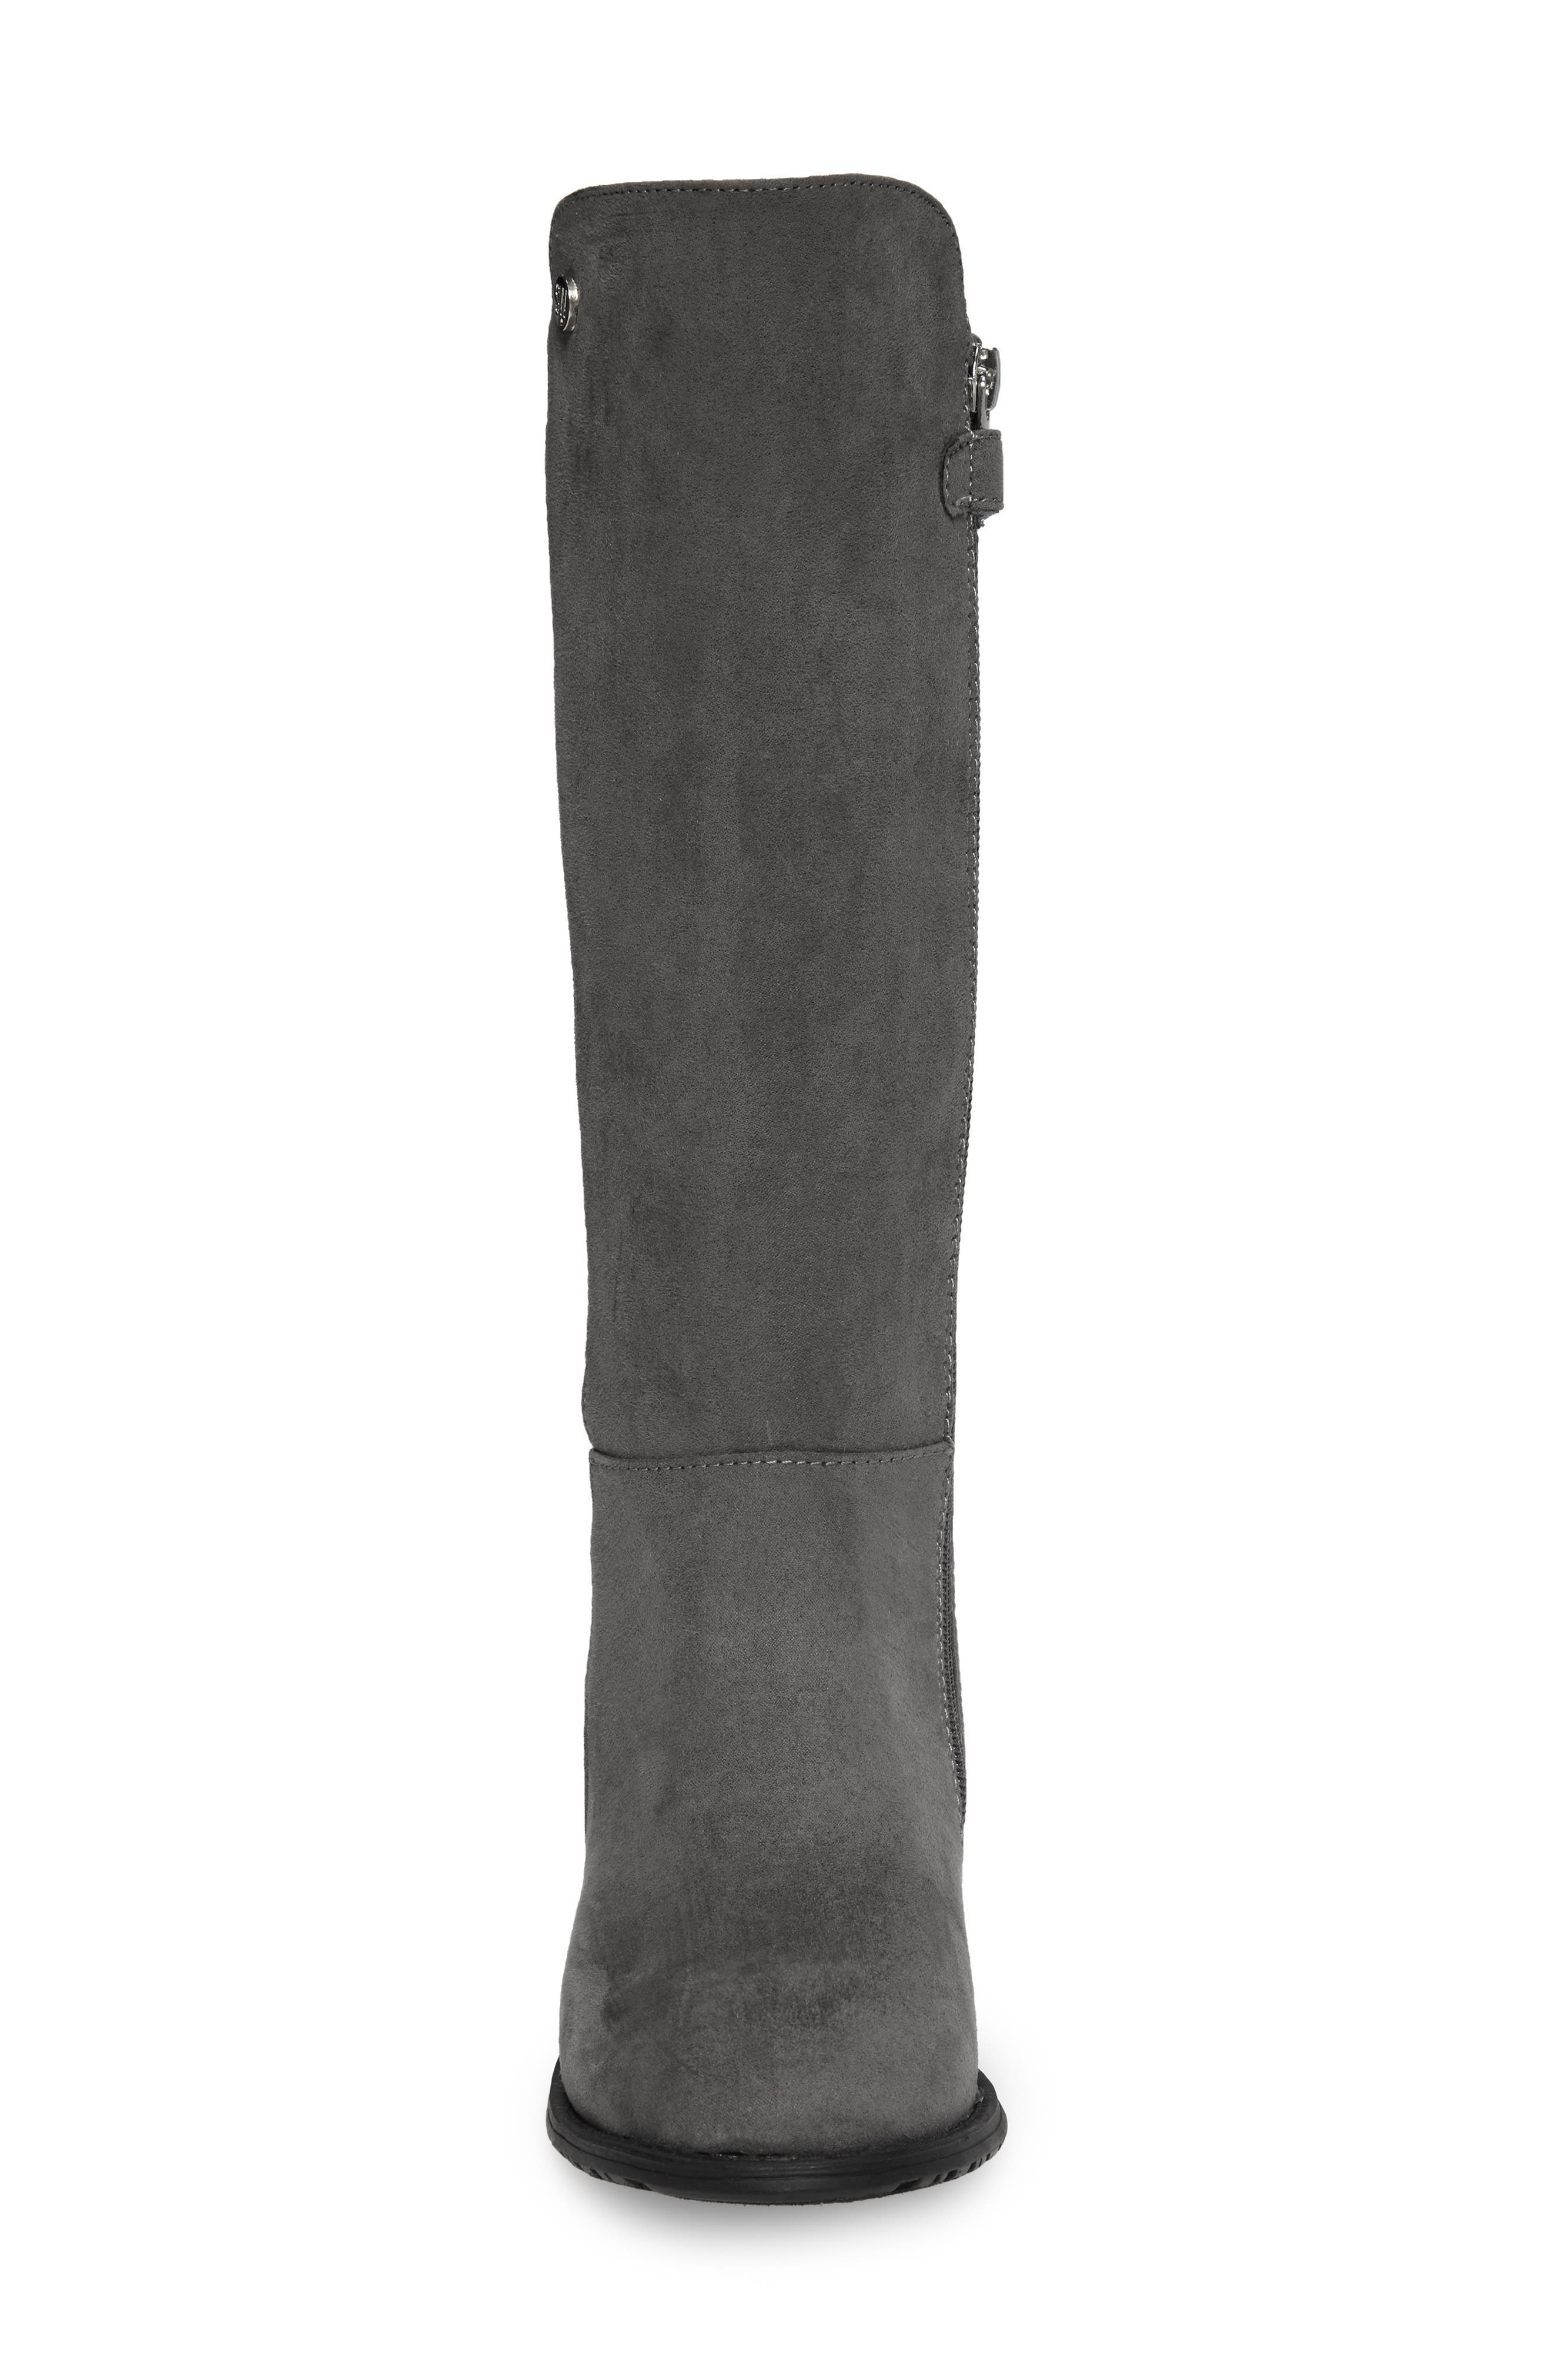 5050 Tall Riding Boot,                             Alternate thumbnail 4, color,                             050